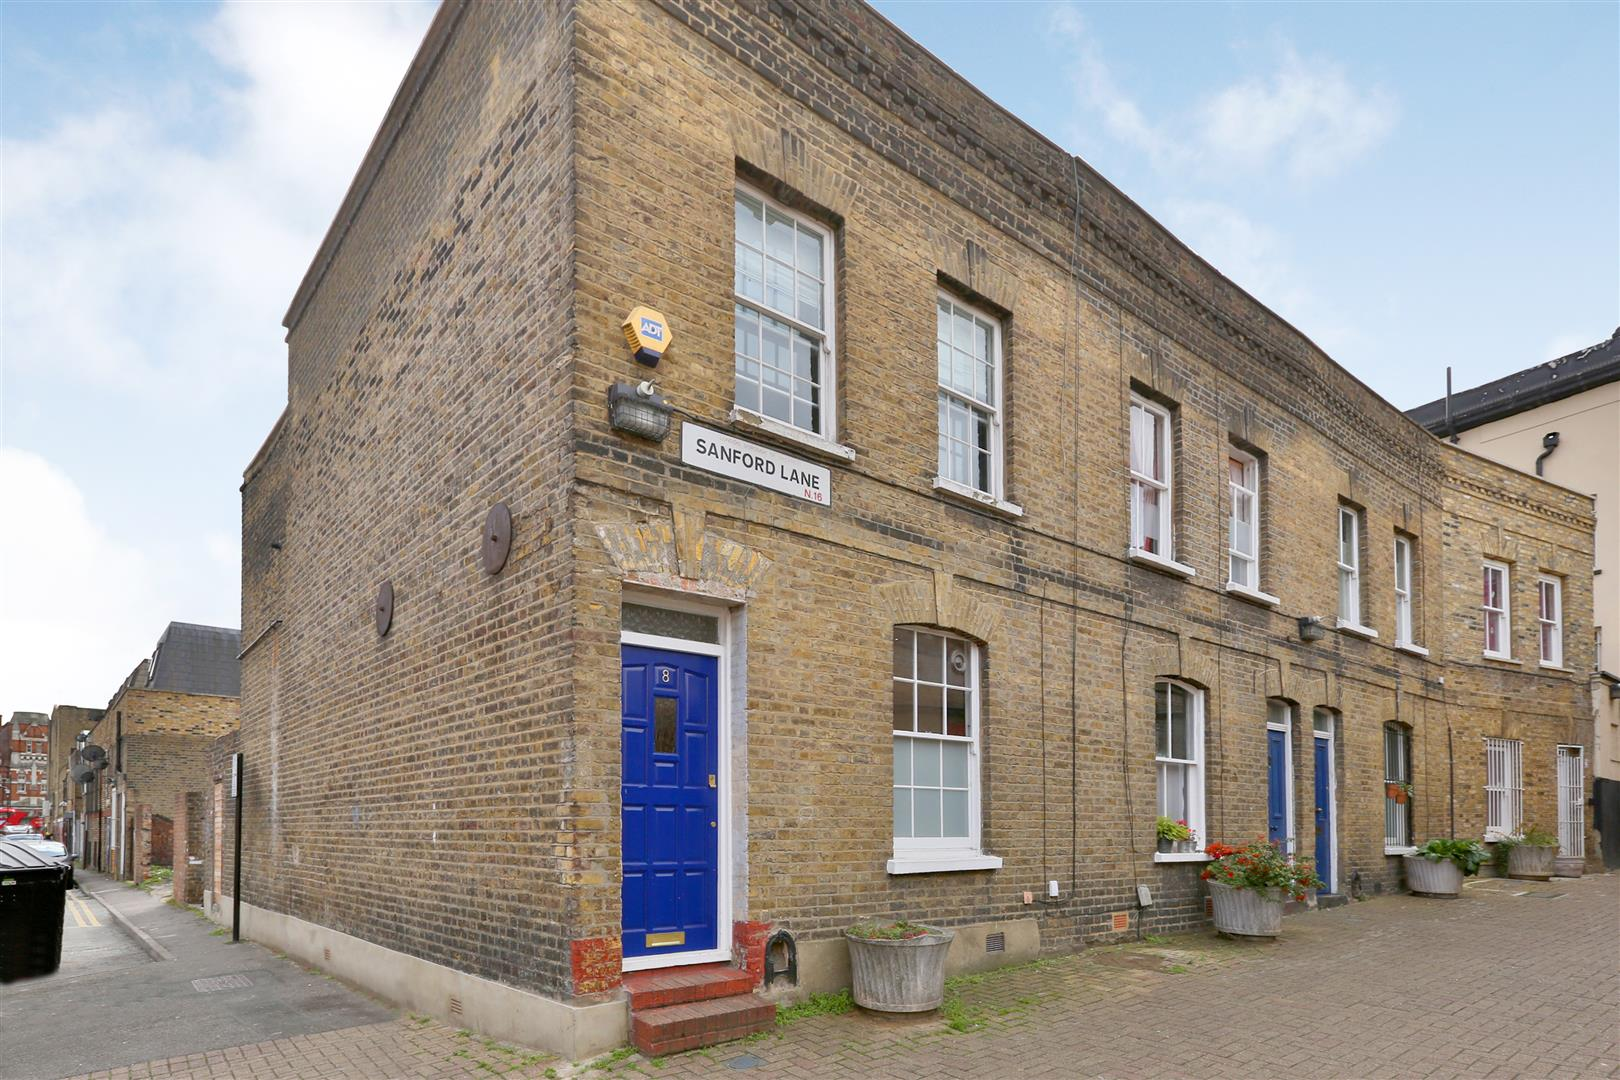 2 Bedrooms House for sale in Sanford Lane, London